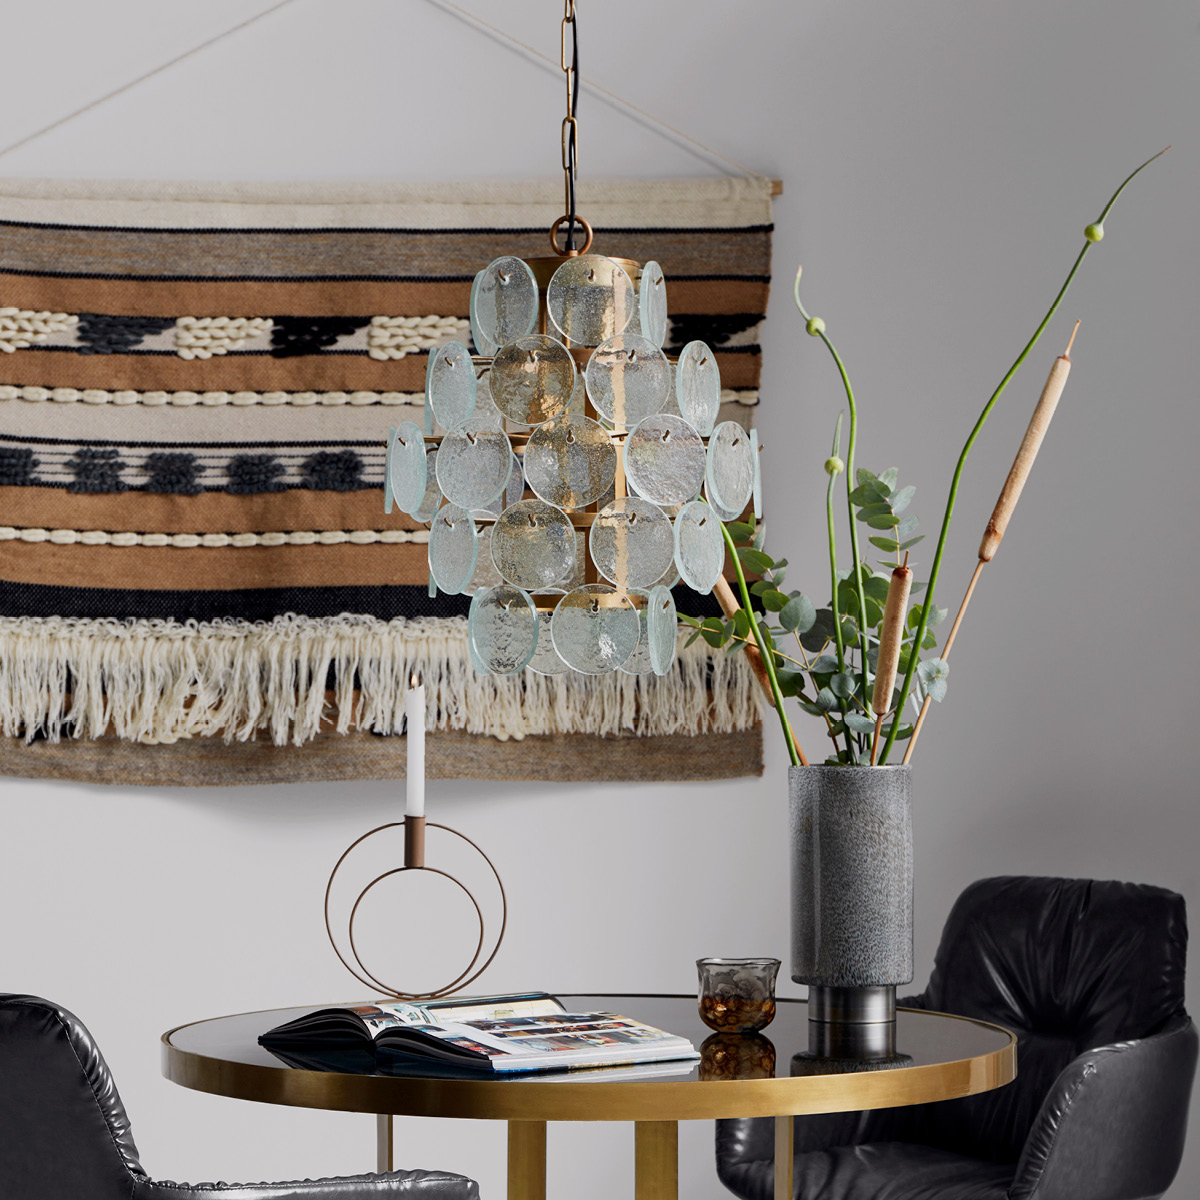 Woodstock Hand Woven Wall Hanging gallery image